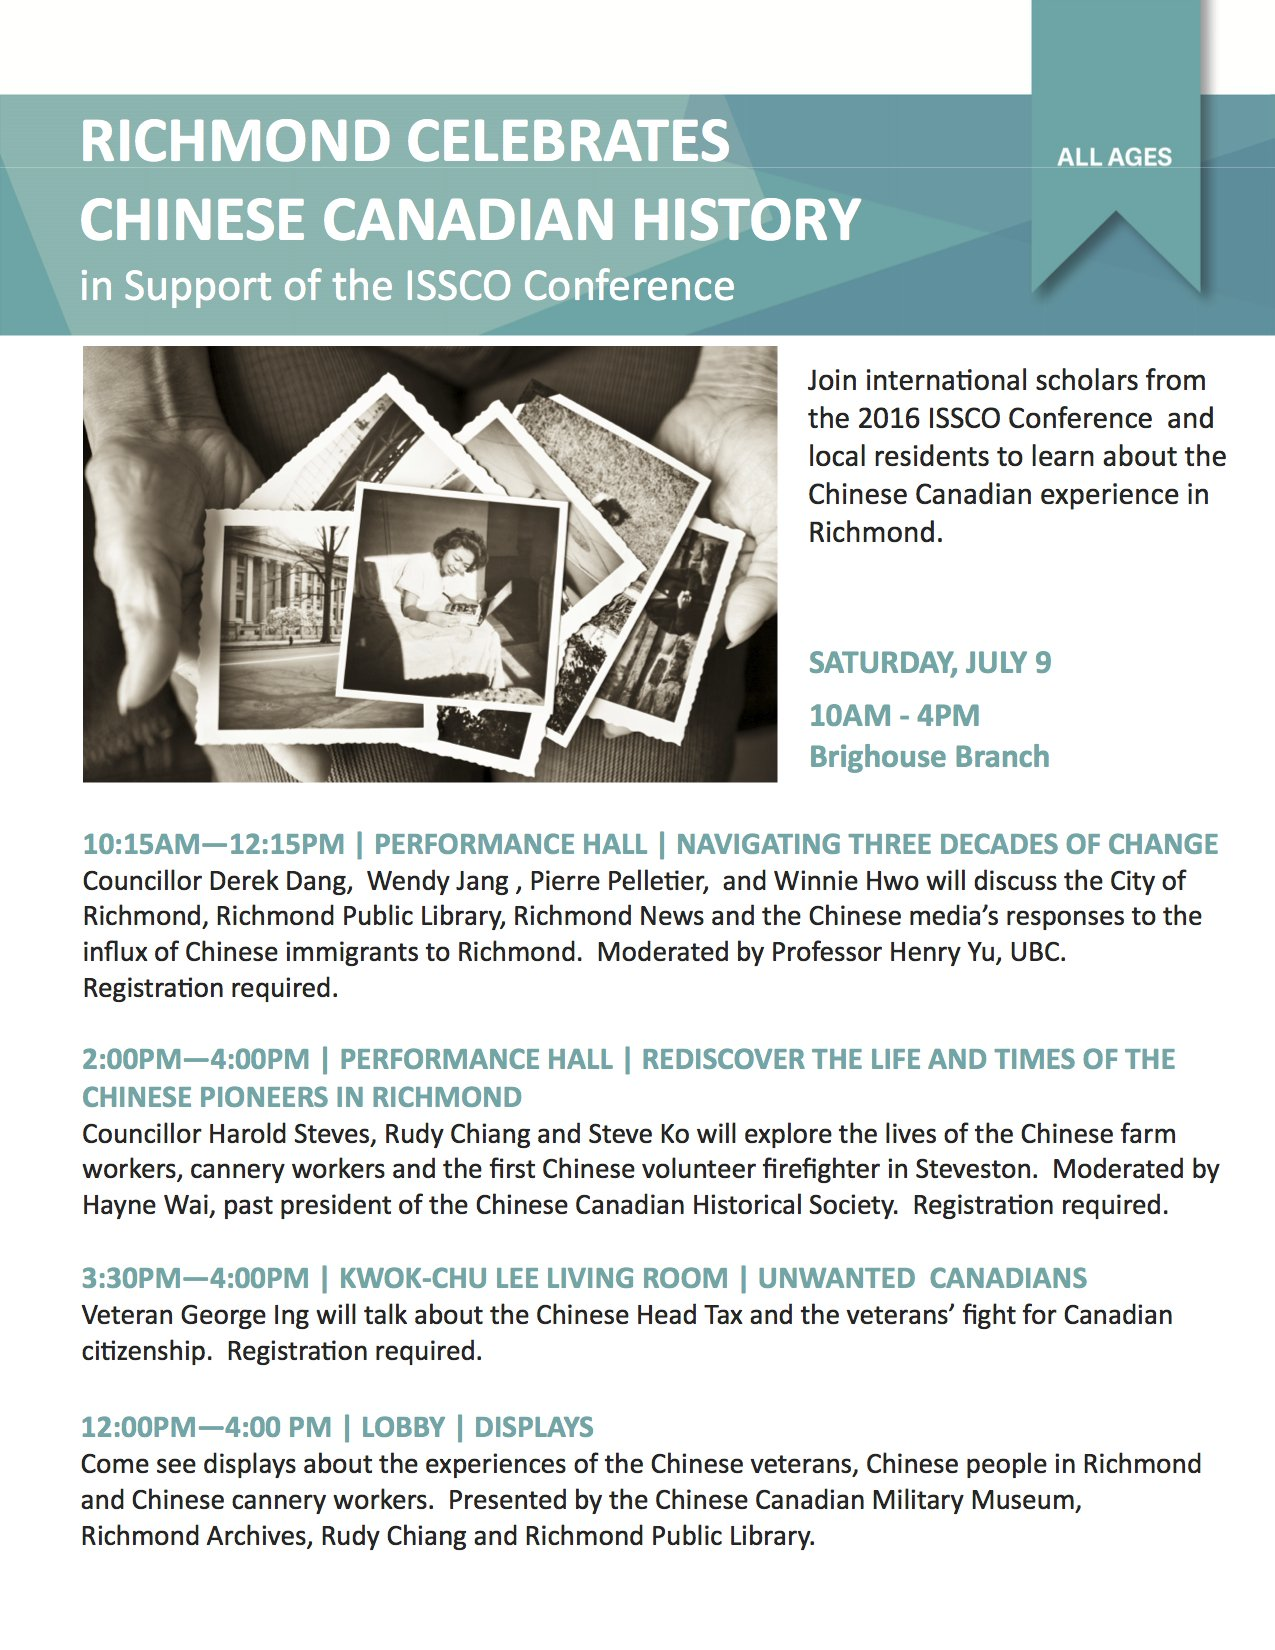 Check out these awesome events at @RPL_YourLibrary tmw featuring Richmond's Chinese Cdn history! @2016_issco https://t.co/xXnac9kBe3